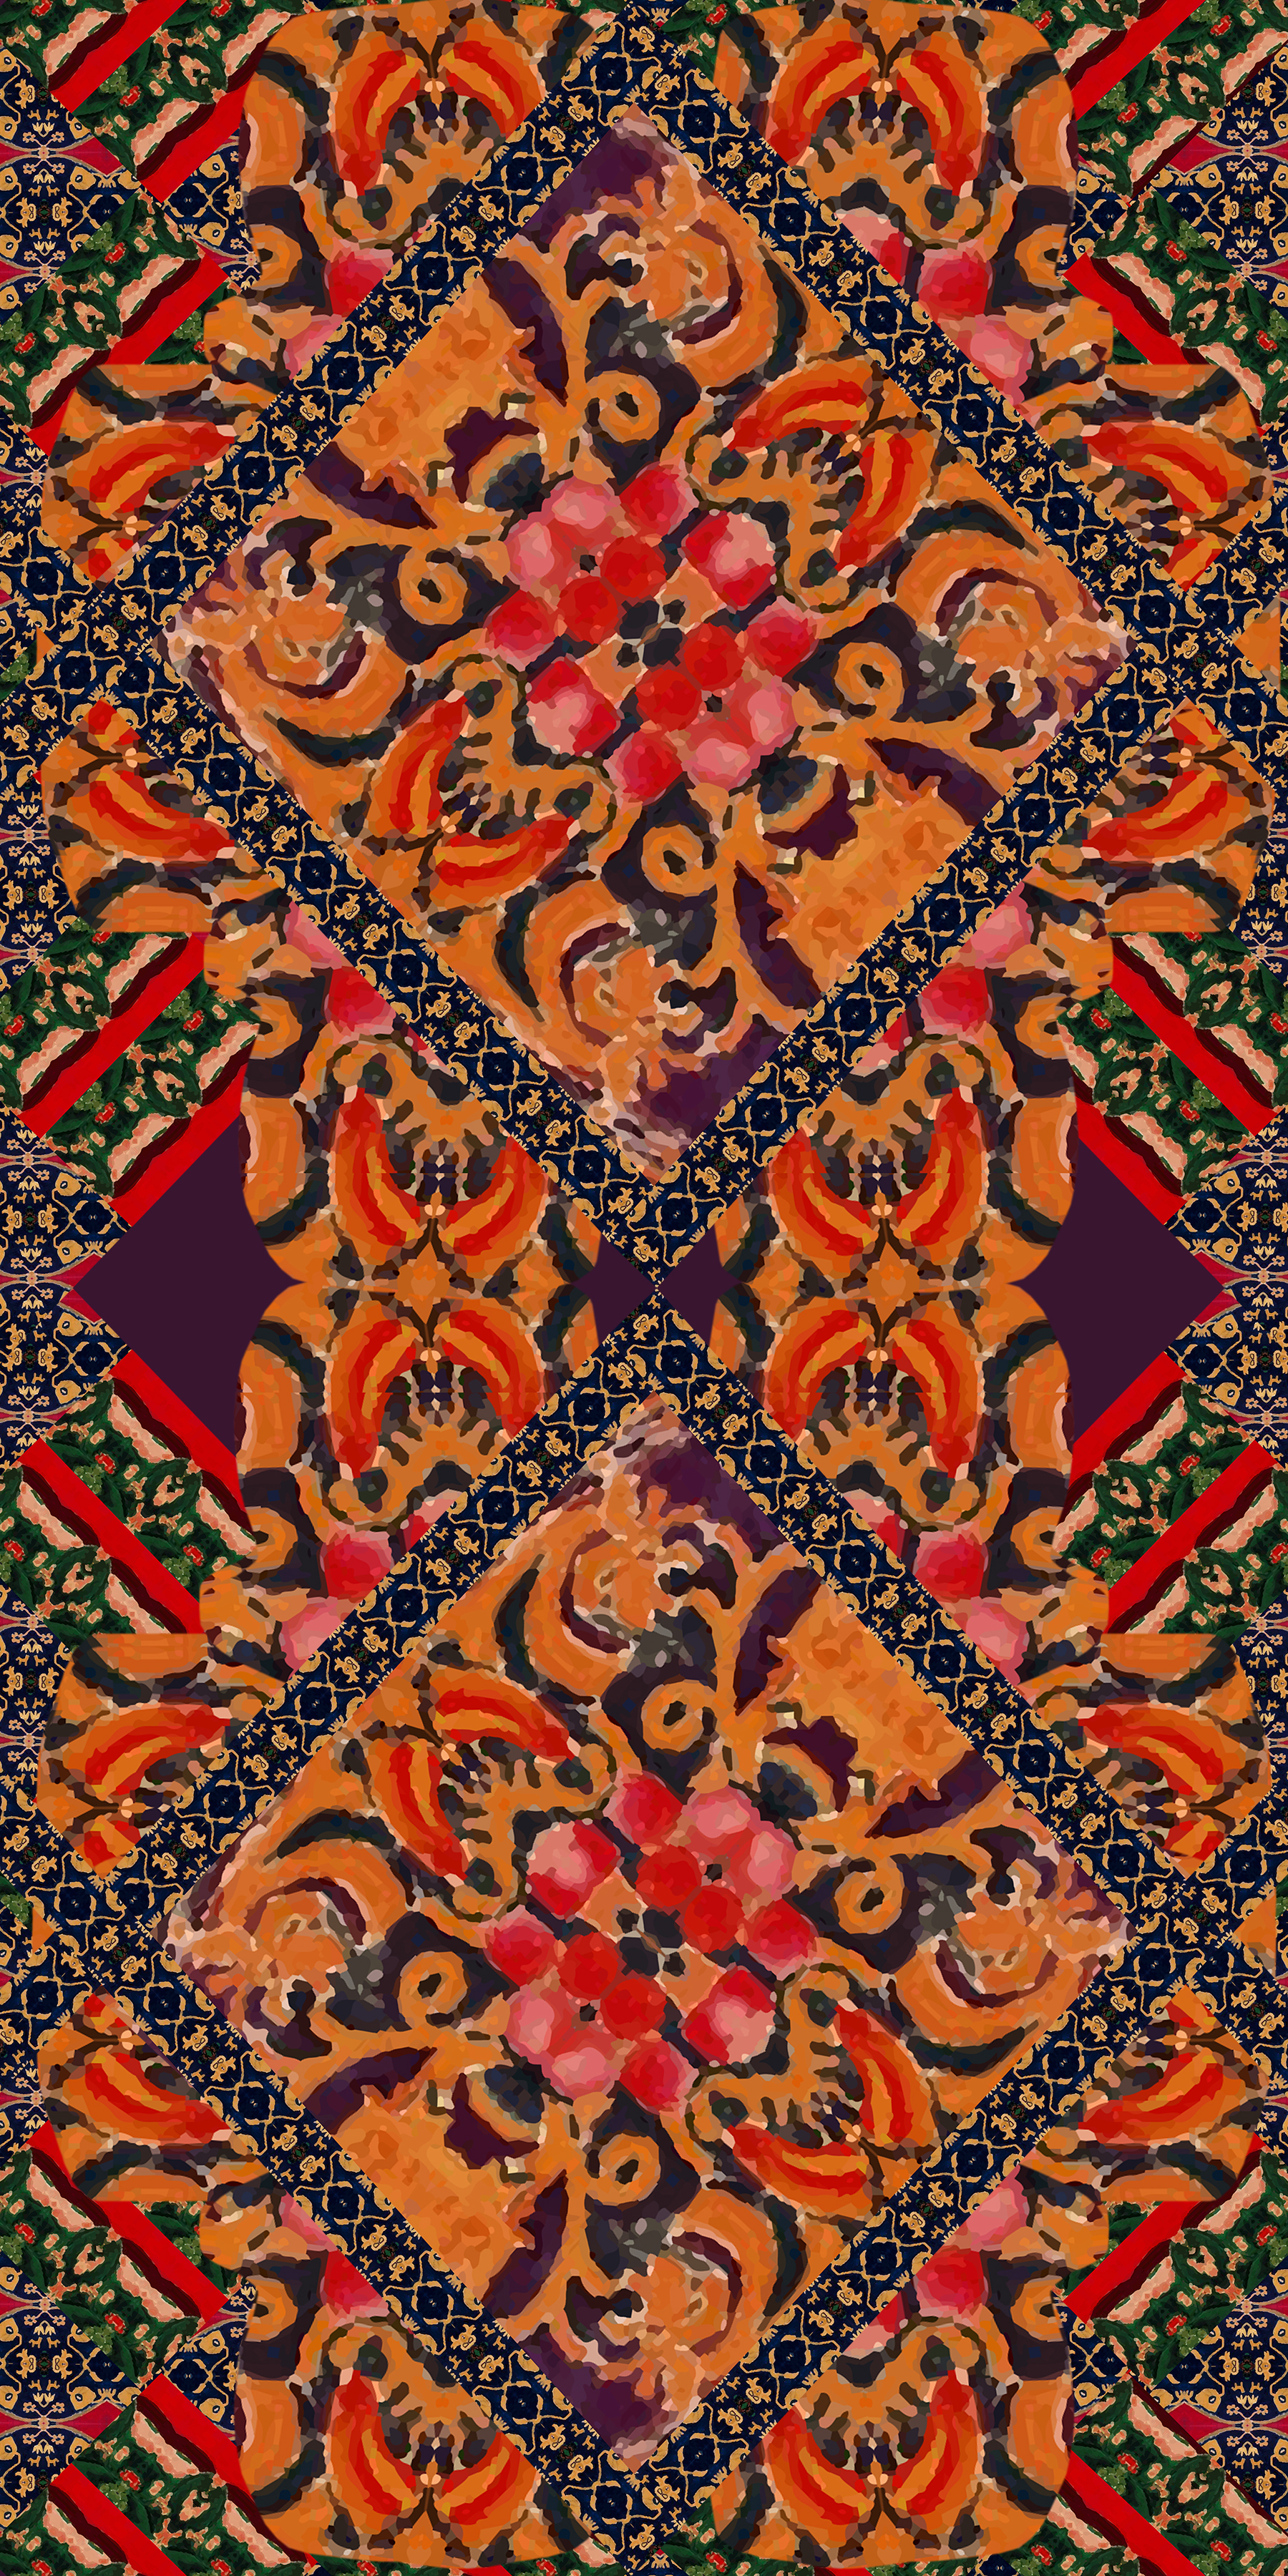 Painted Rug Motif CAD